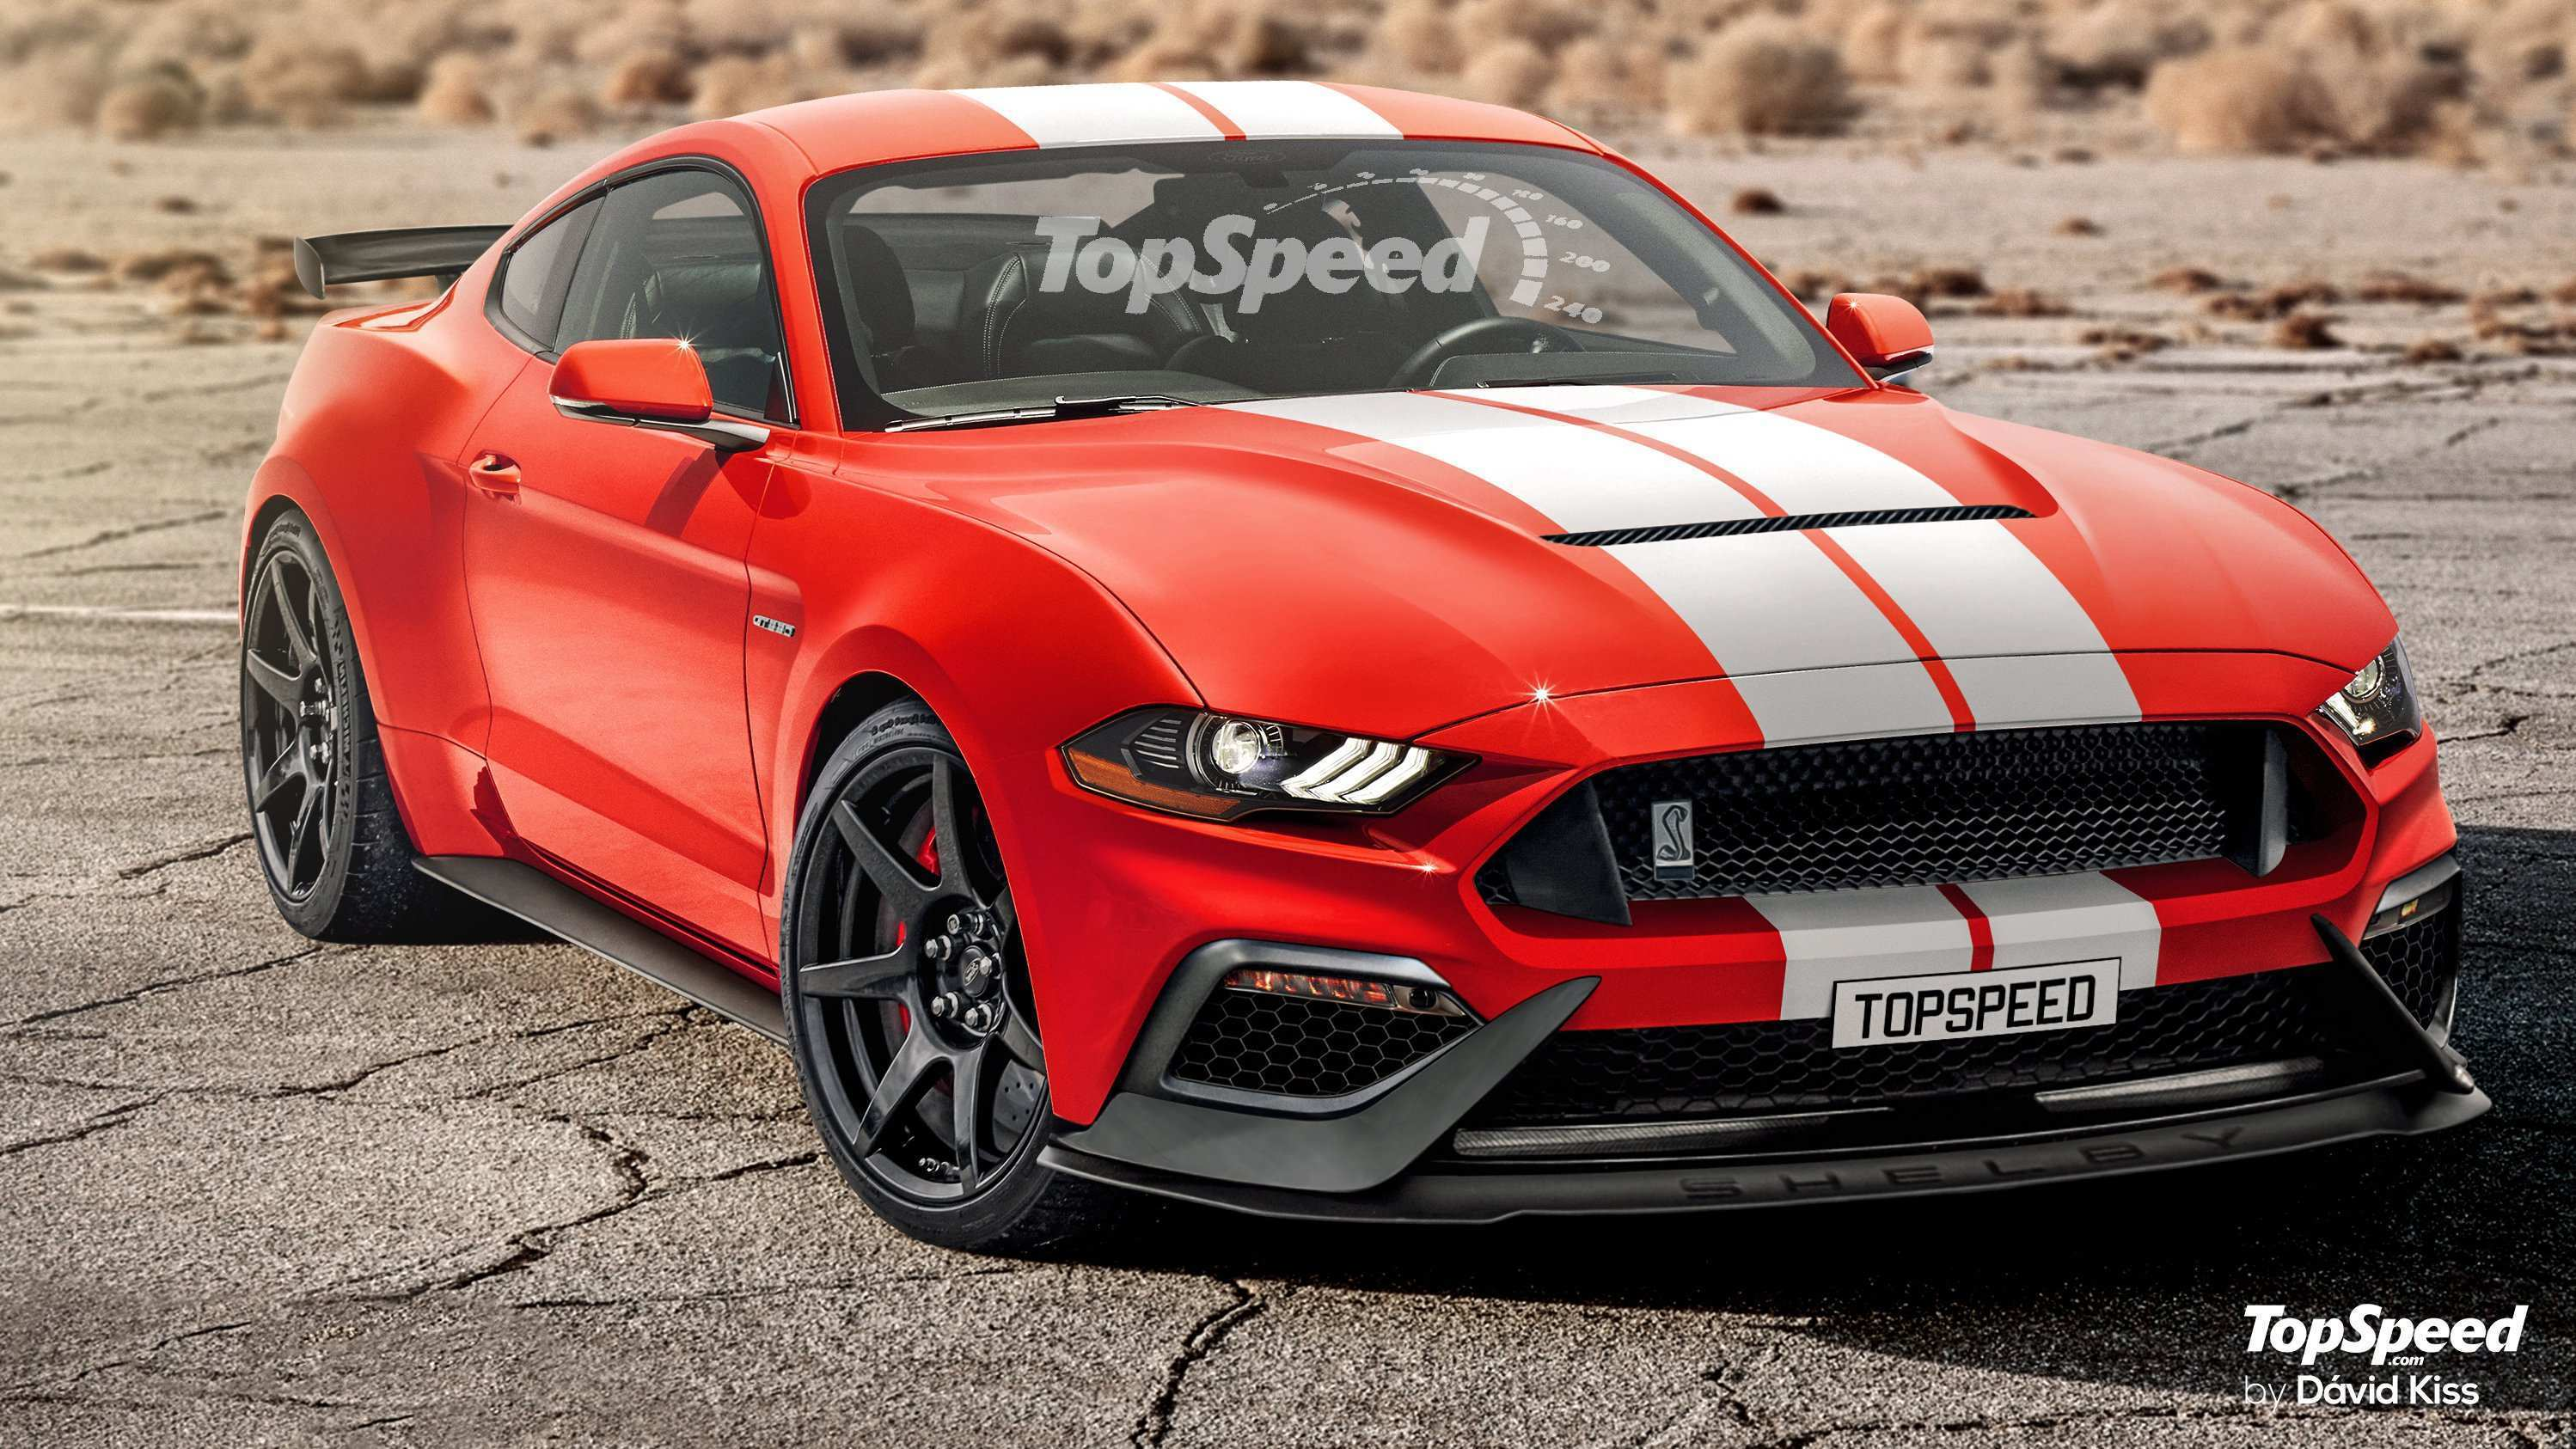 85 The Best Spy Shots Ford Mustang Svt Gt 500 Price And Review